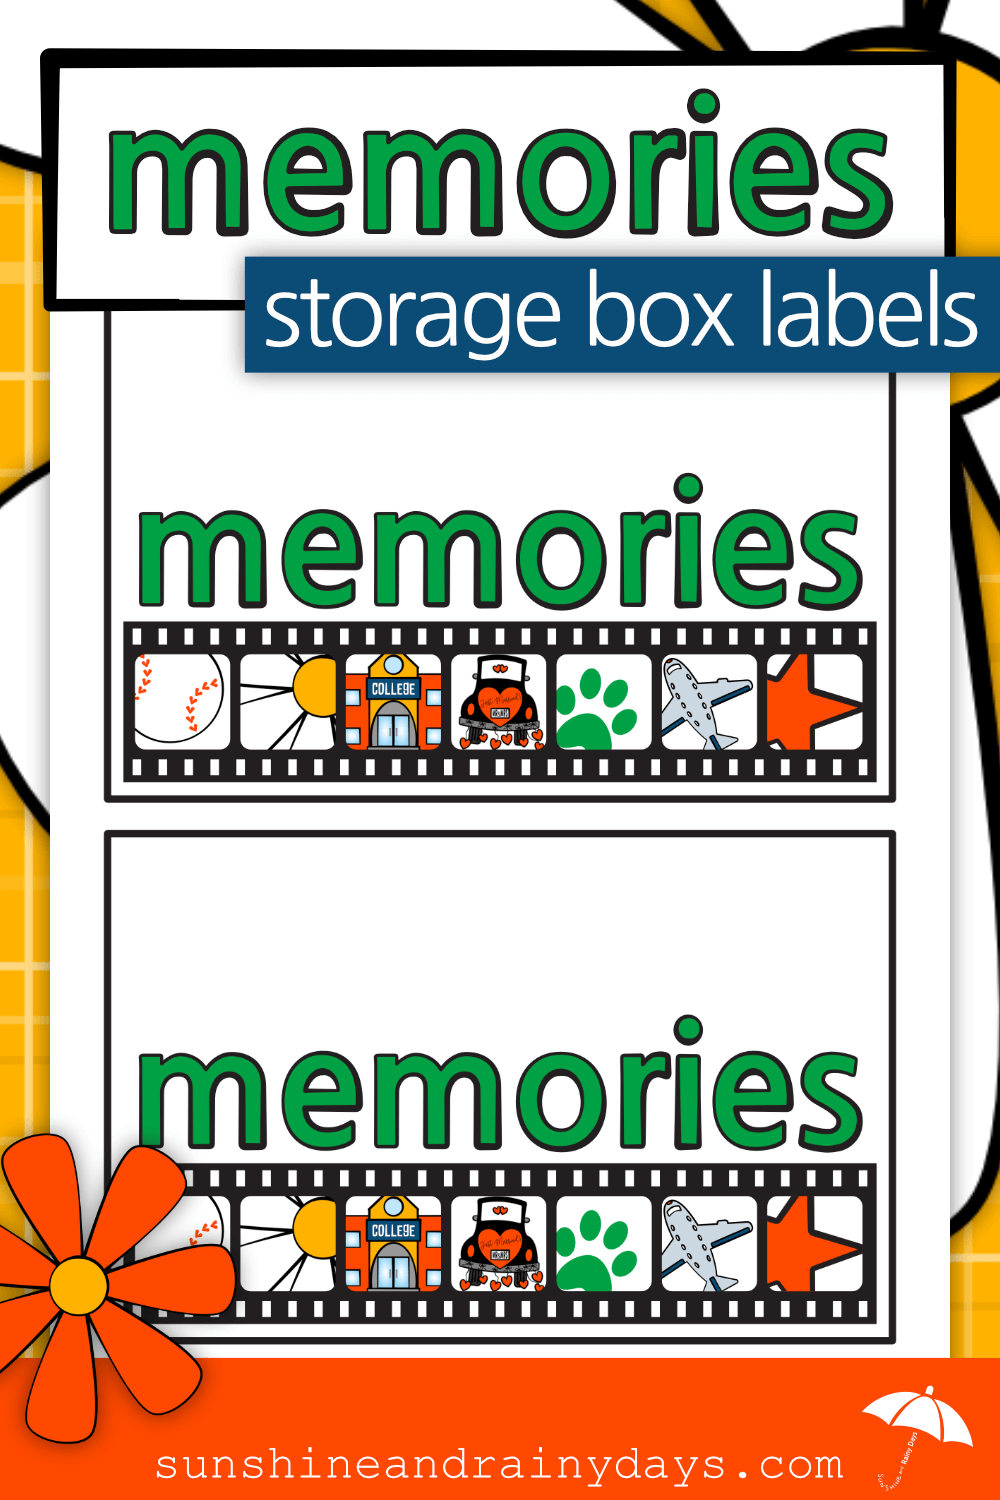 Memories Storage Box Label (PDF)